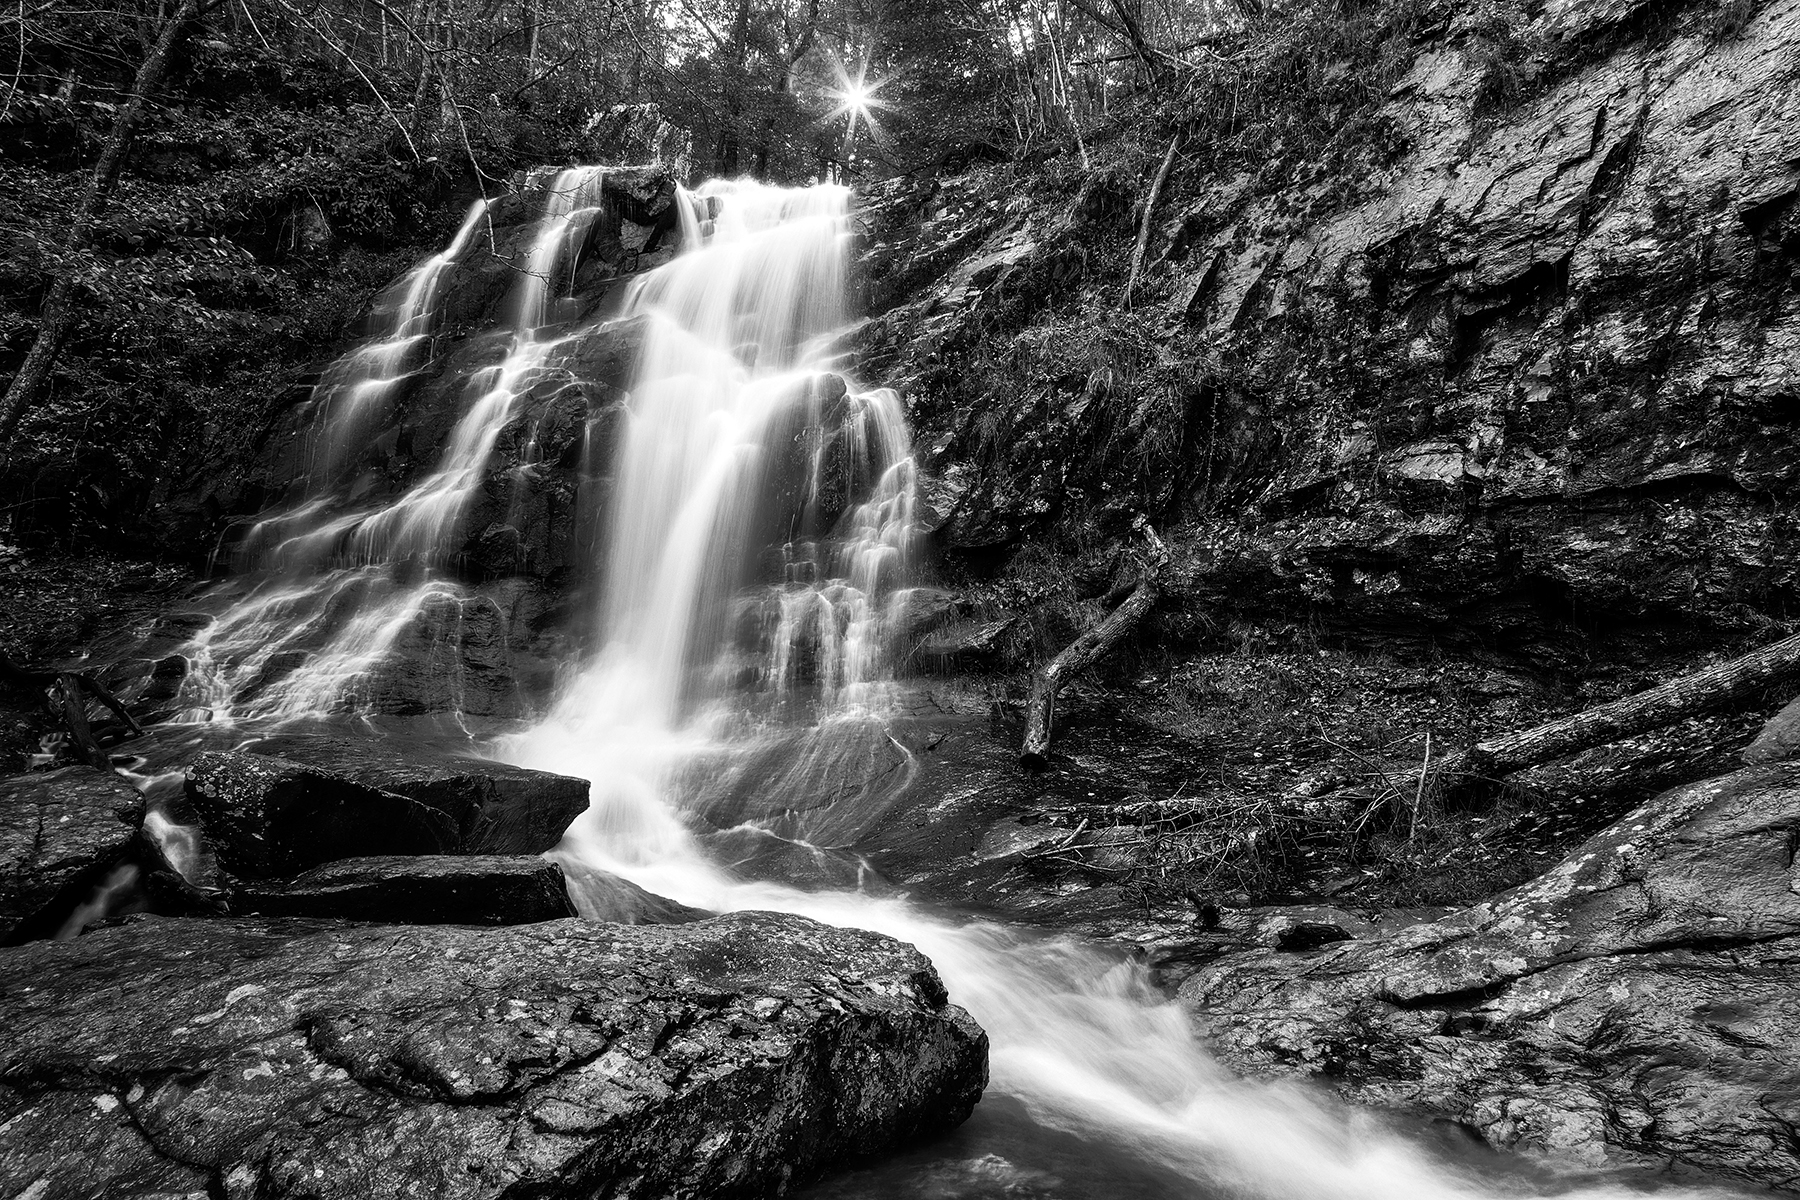 Jones sun waterfall - black & white photo